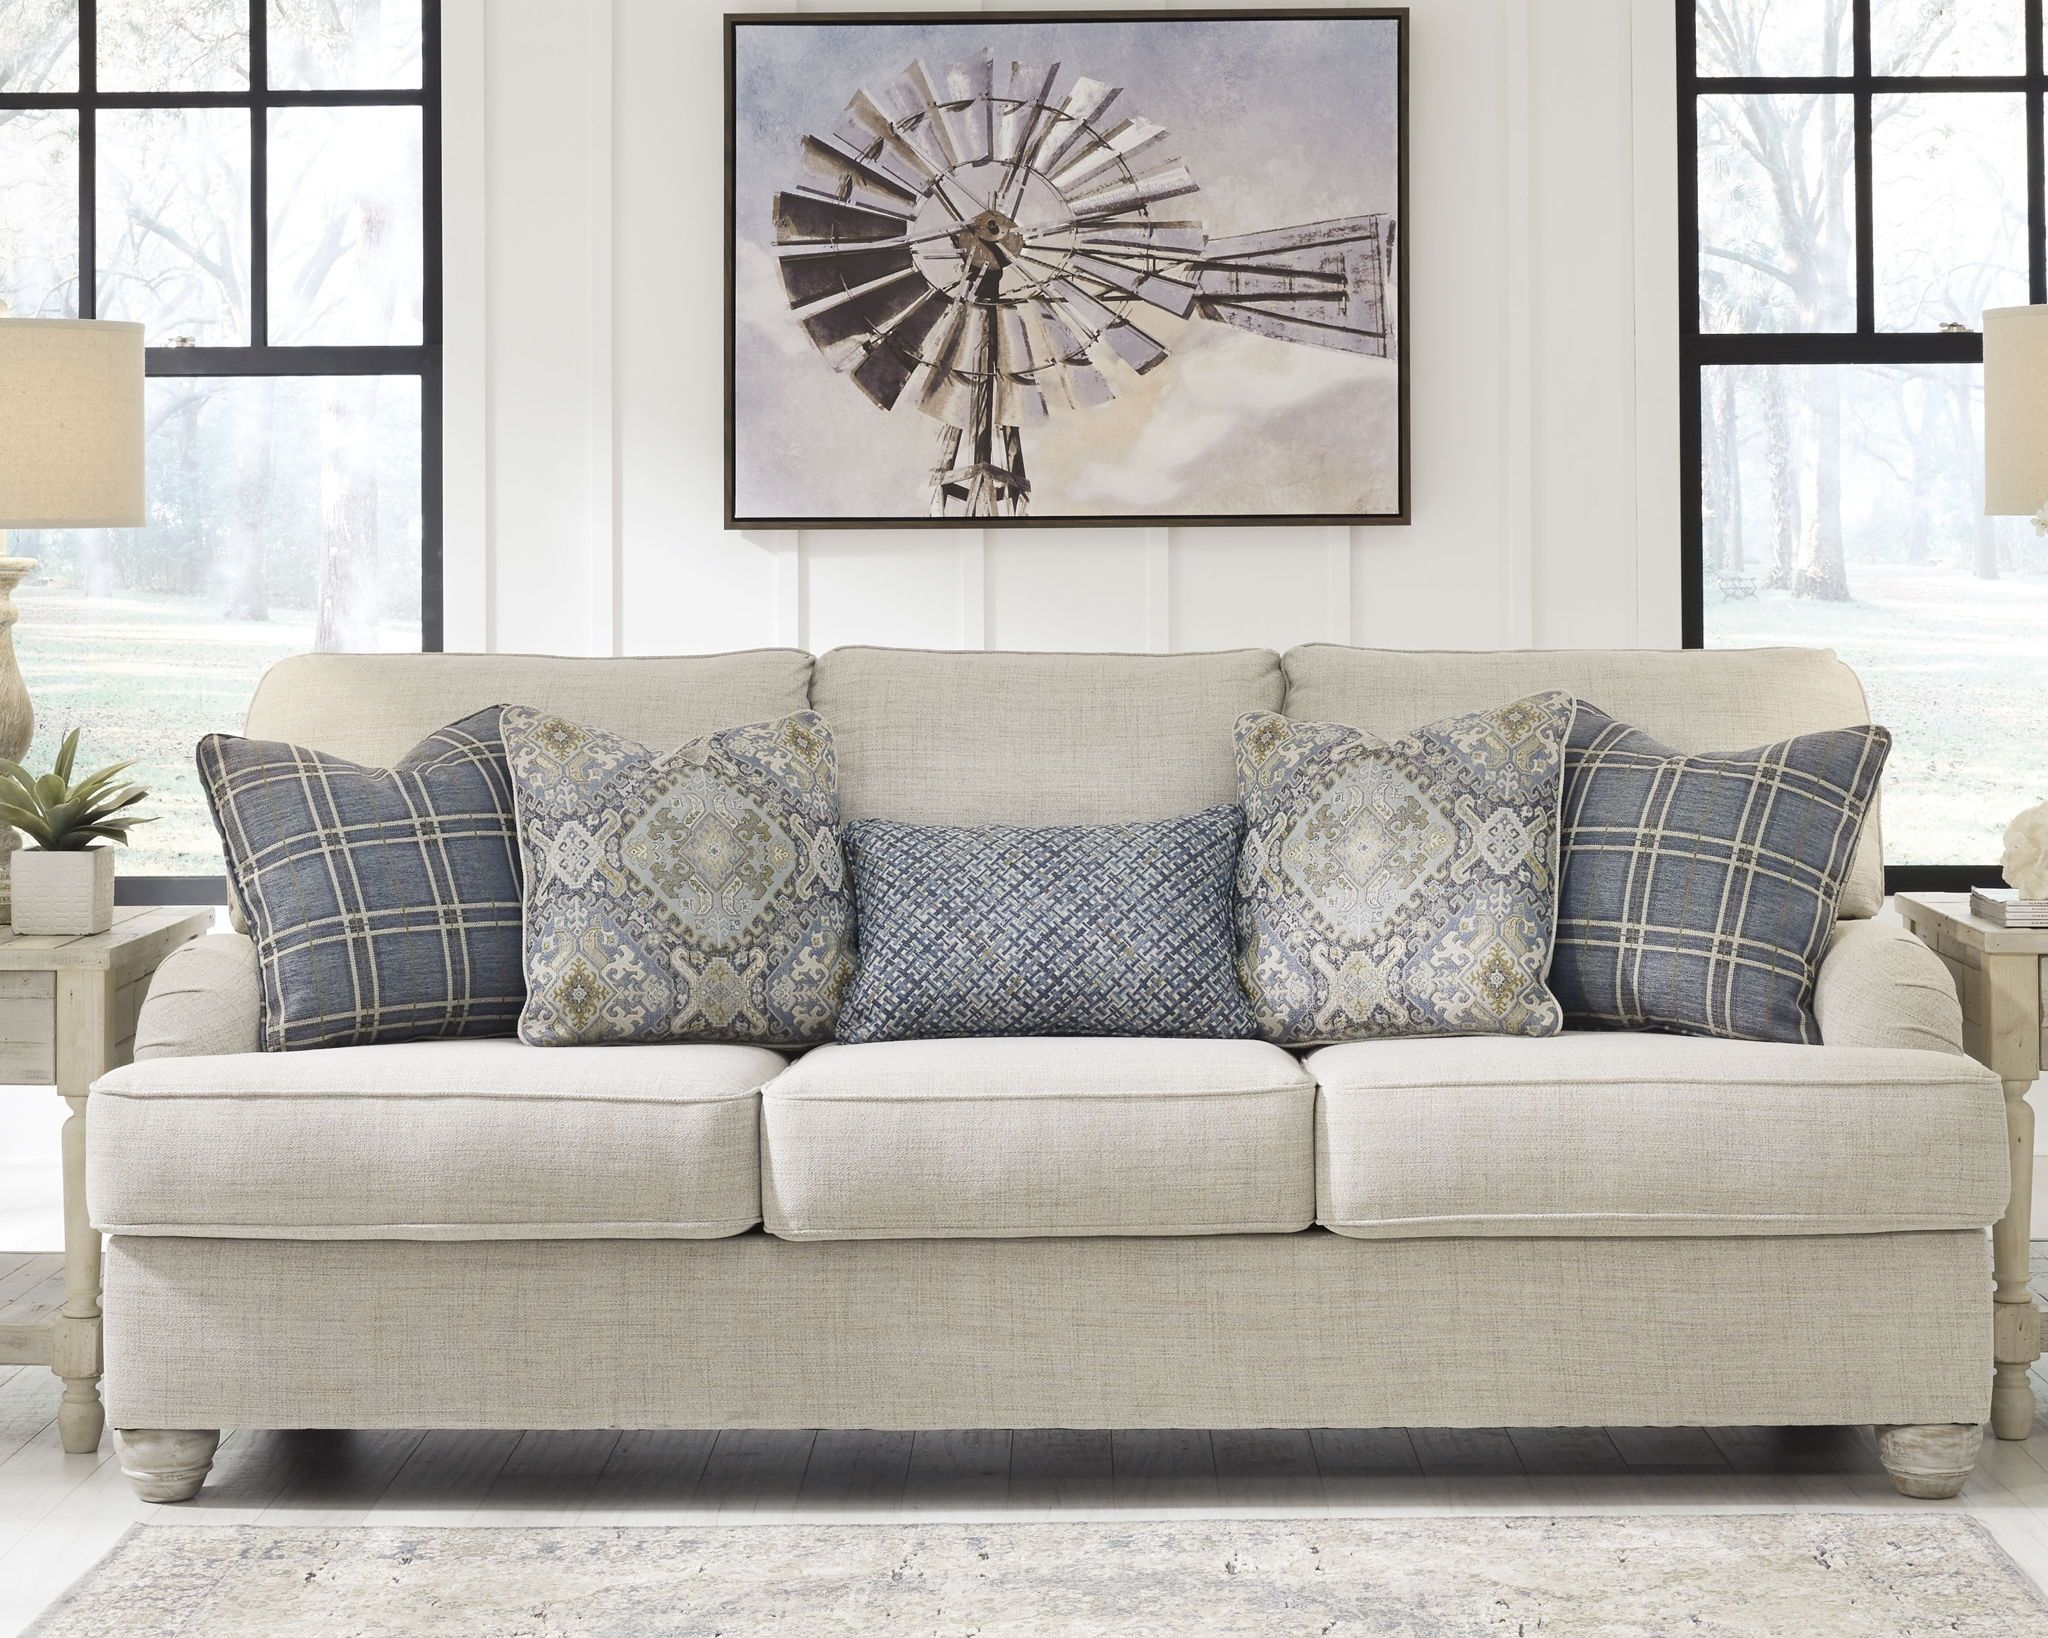 Traemore Sofa Sleeper | Calgary's Furniture Store